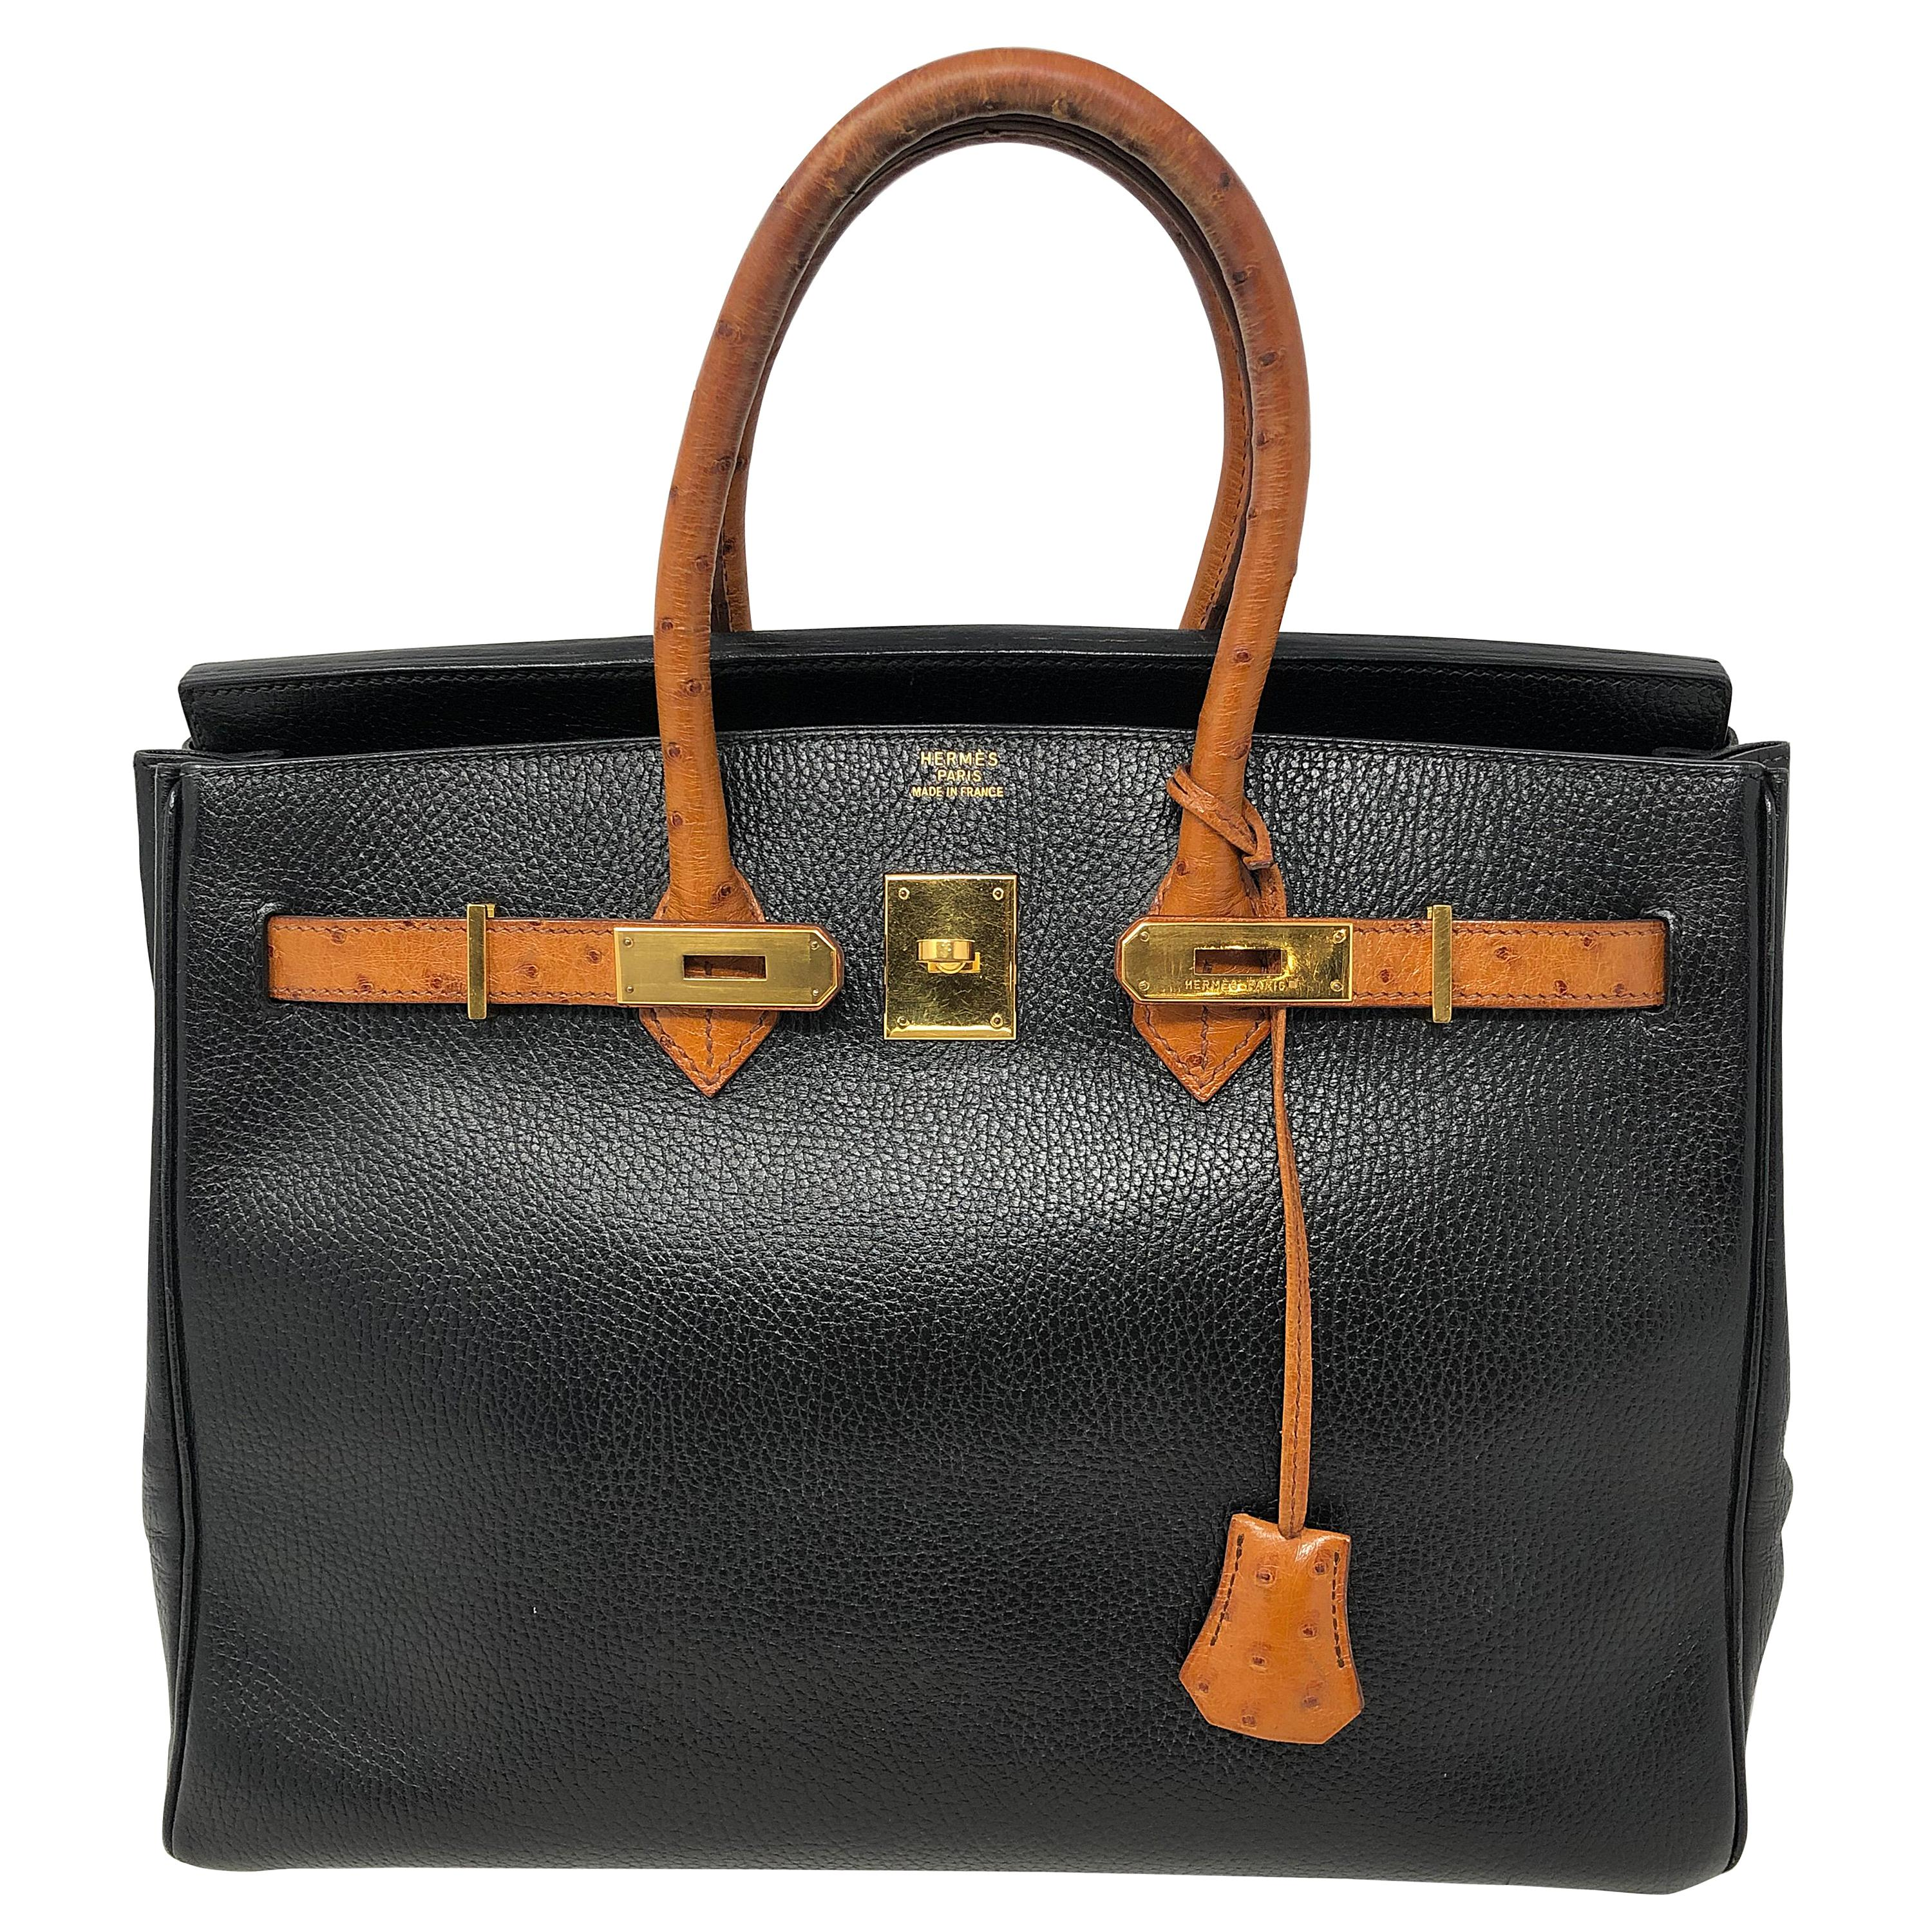 Hermes Birkin Ostrich Bags - 21 For Sale on 1stdibs e0c7ebcb6ce2a